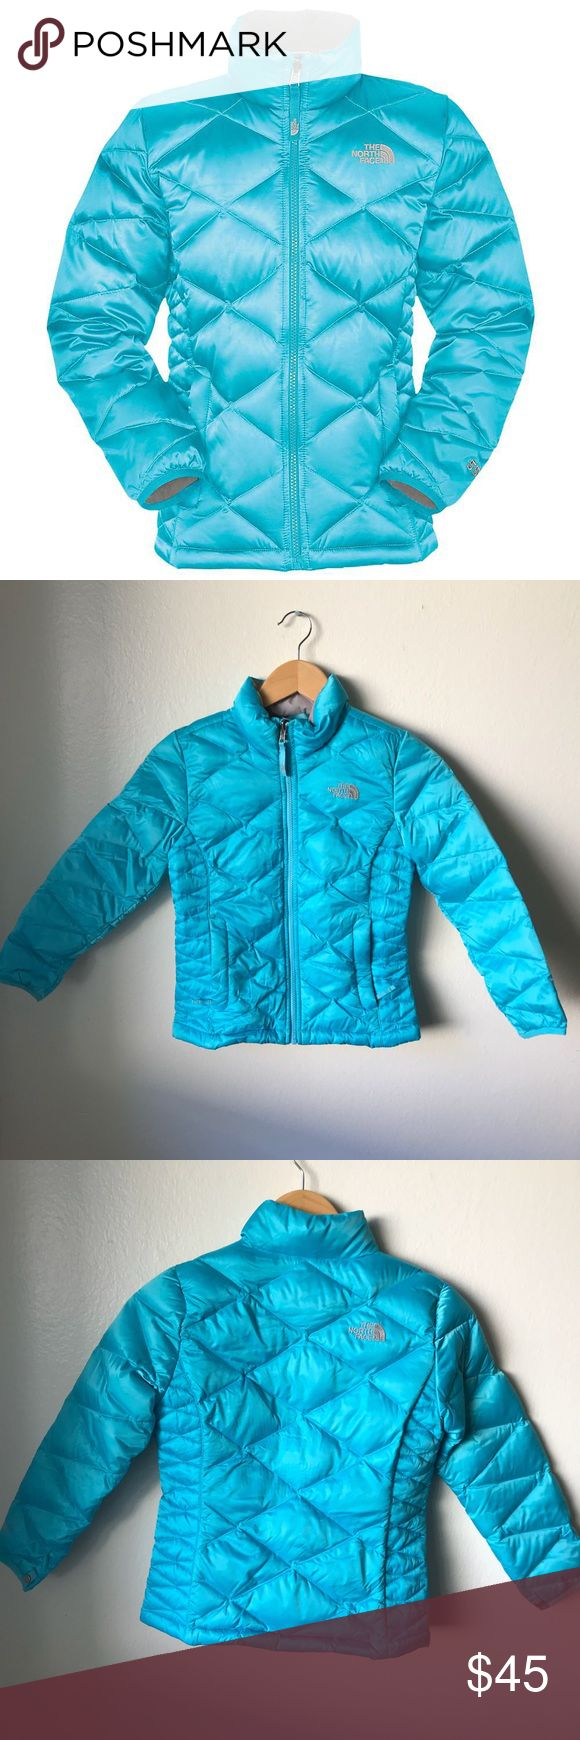 Girls North Face Blue Puffer Jacket Size 7/8 The jacket is in a great condition, has a tiny dark line but not noticeable from steps away. Overall the jacket is in great condition! I bought it because we were supposed to go to the mountains and didn't go after all this past year, now it doesn't fit my princess. North Face Jackets & Coats Puffers